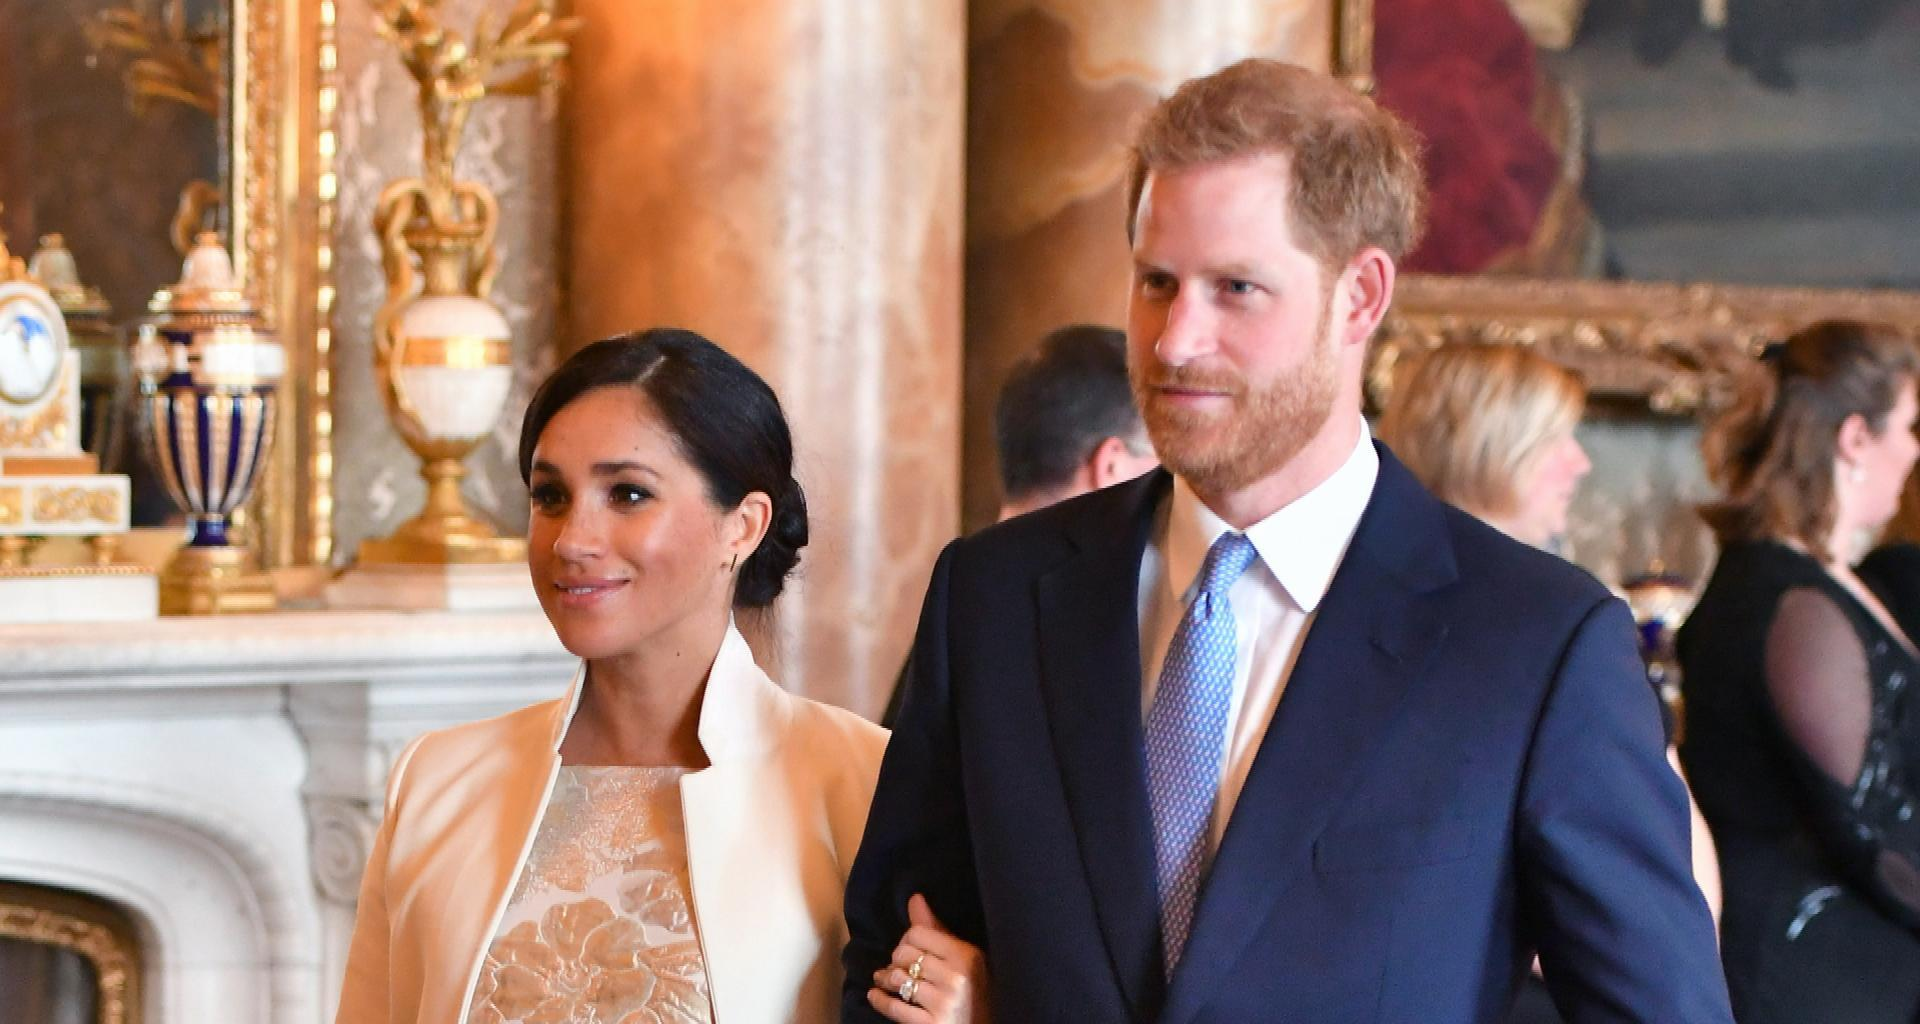 Meghan Markle And Prince Harry Planning To Move To California After Welcoming Their Baby!